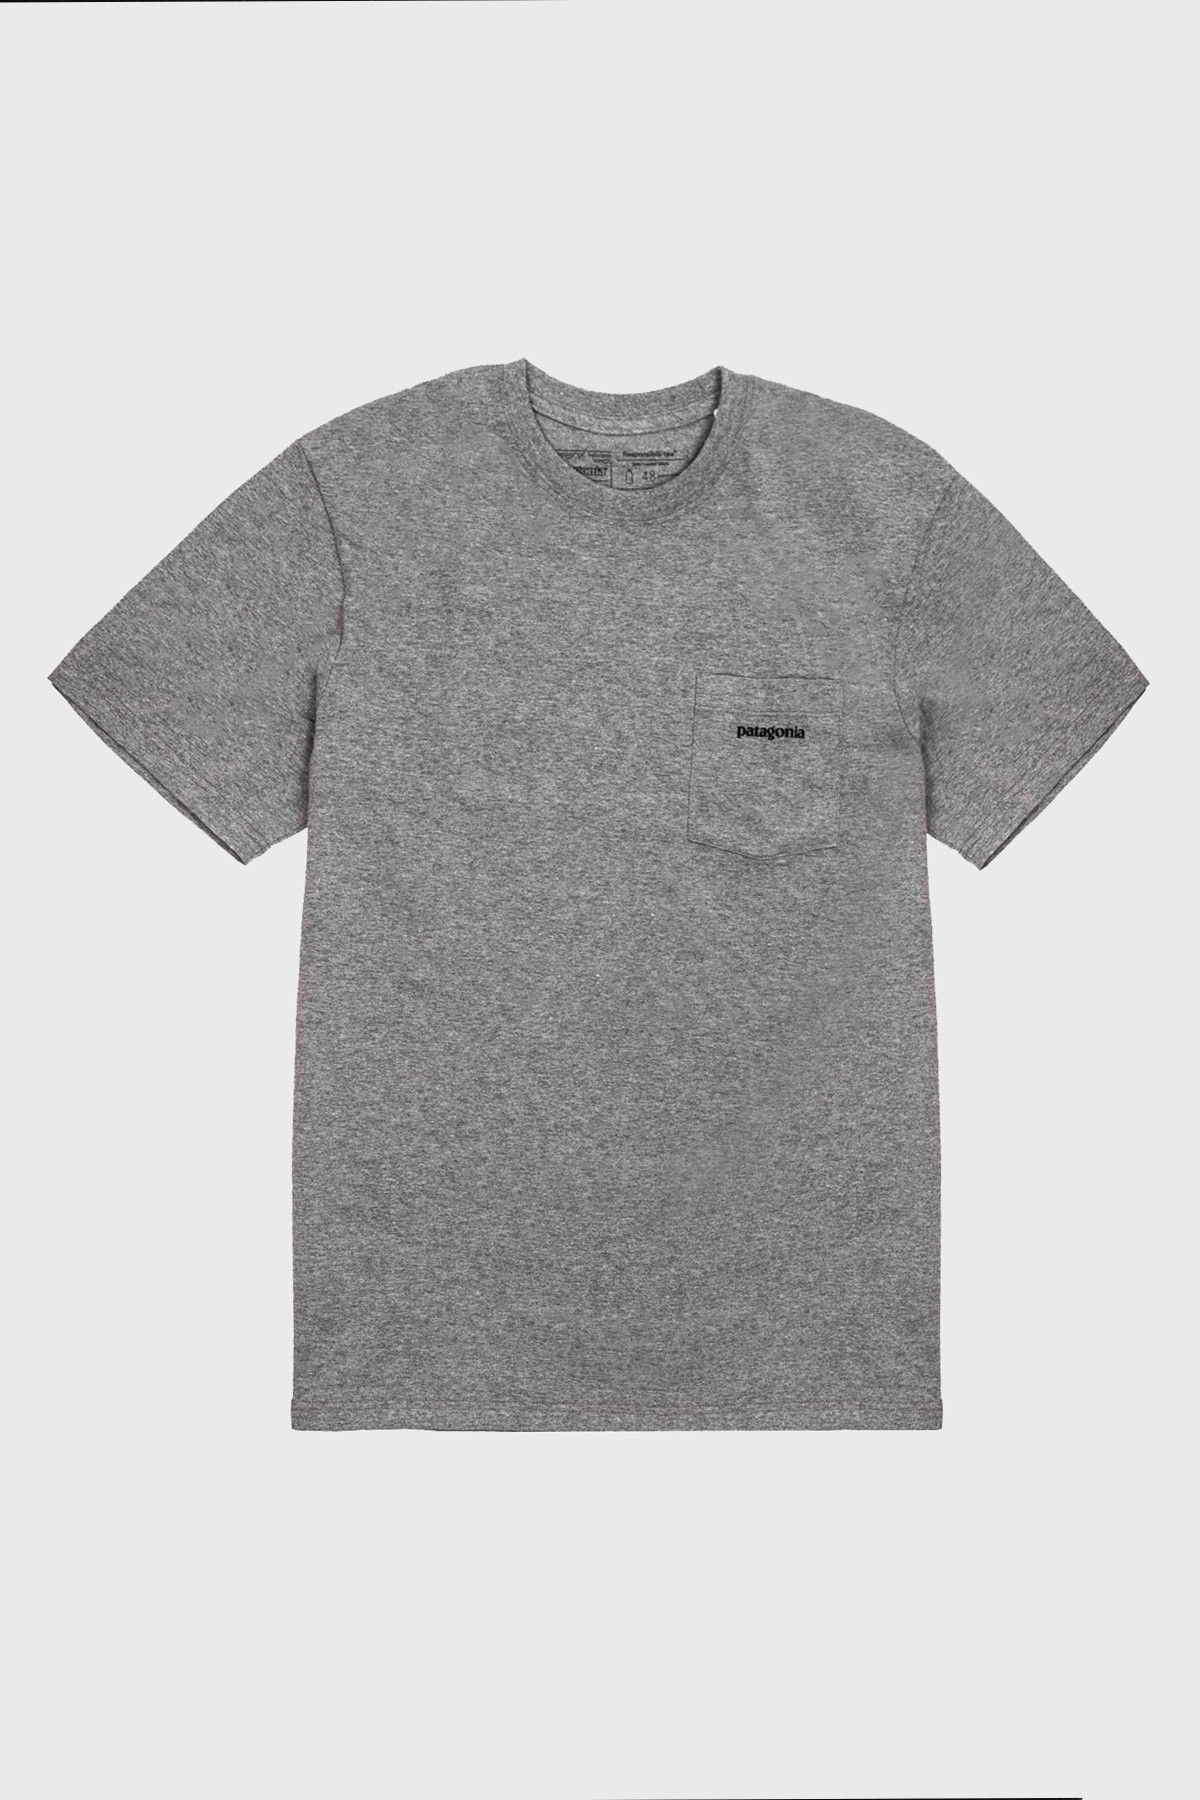 patagonia - P-6 logo pocket Tee - GRAVEL HEATHER